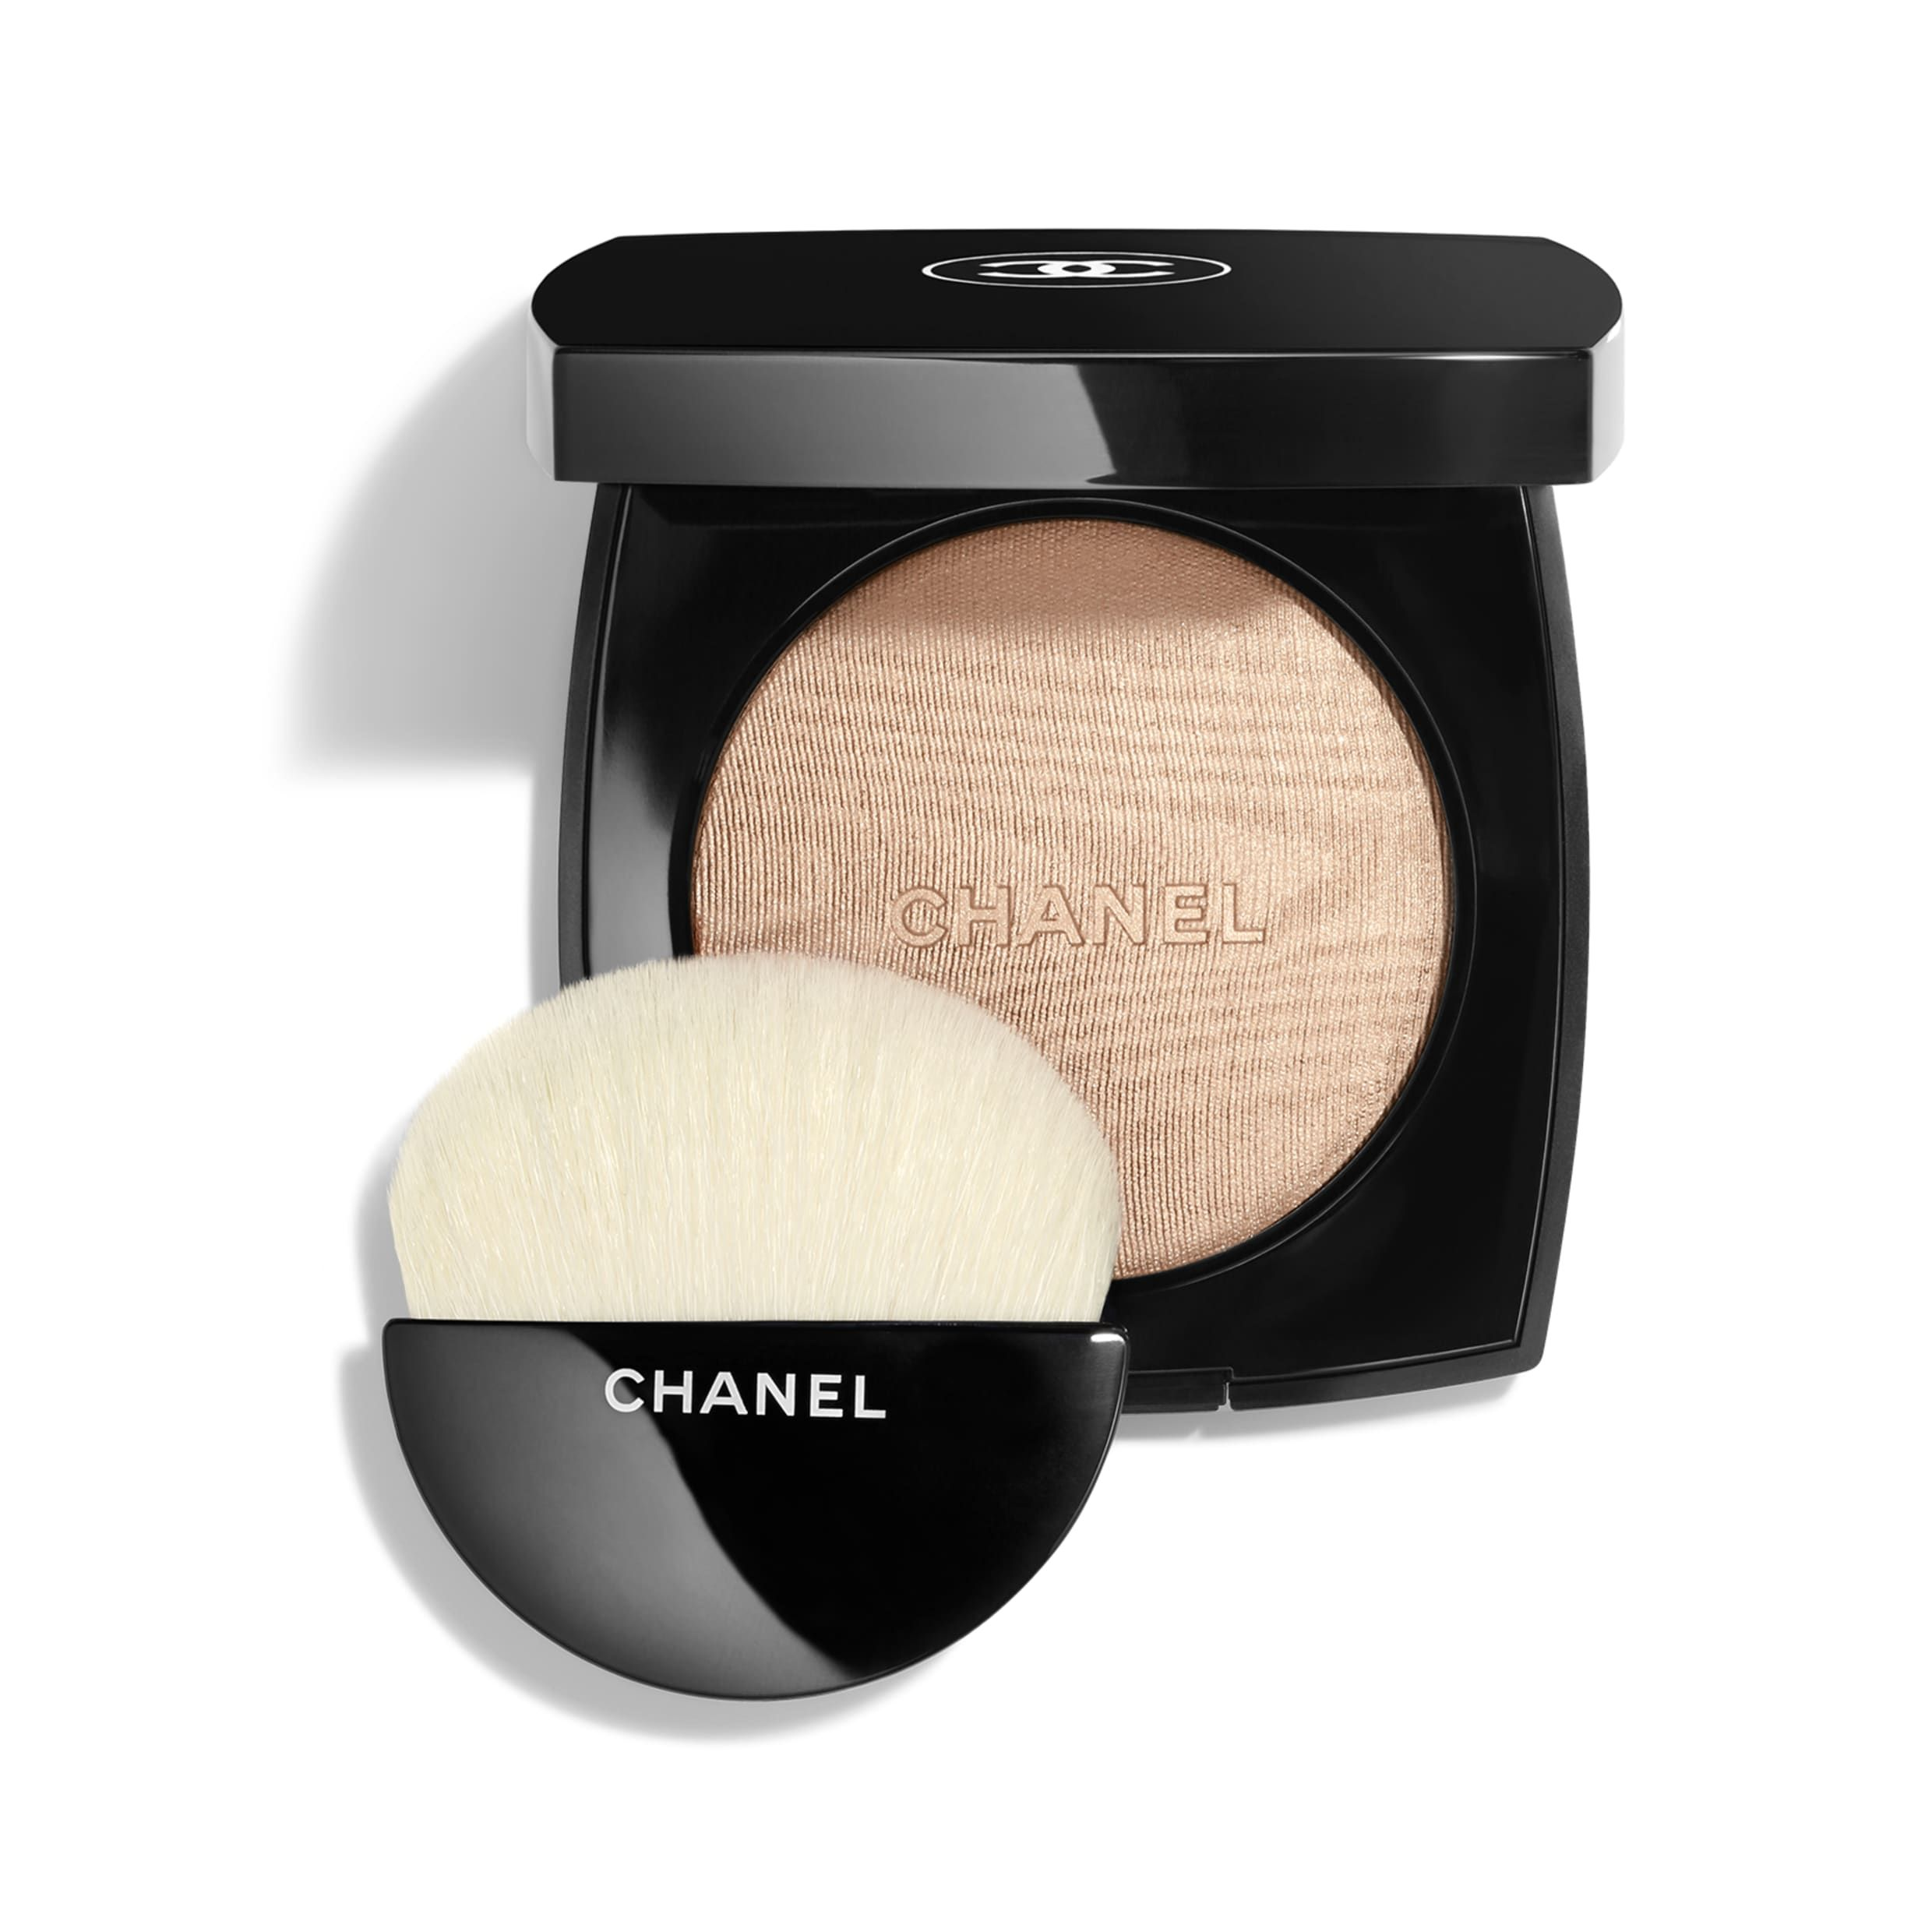 POUDRE LUMIÈRE Highlighting Powder 10 IVORY GOLD